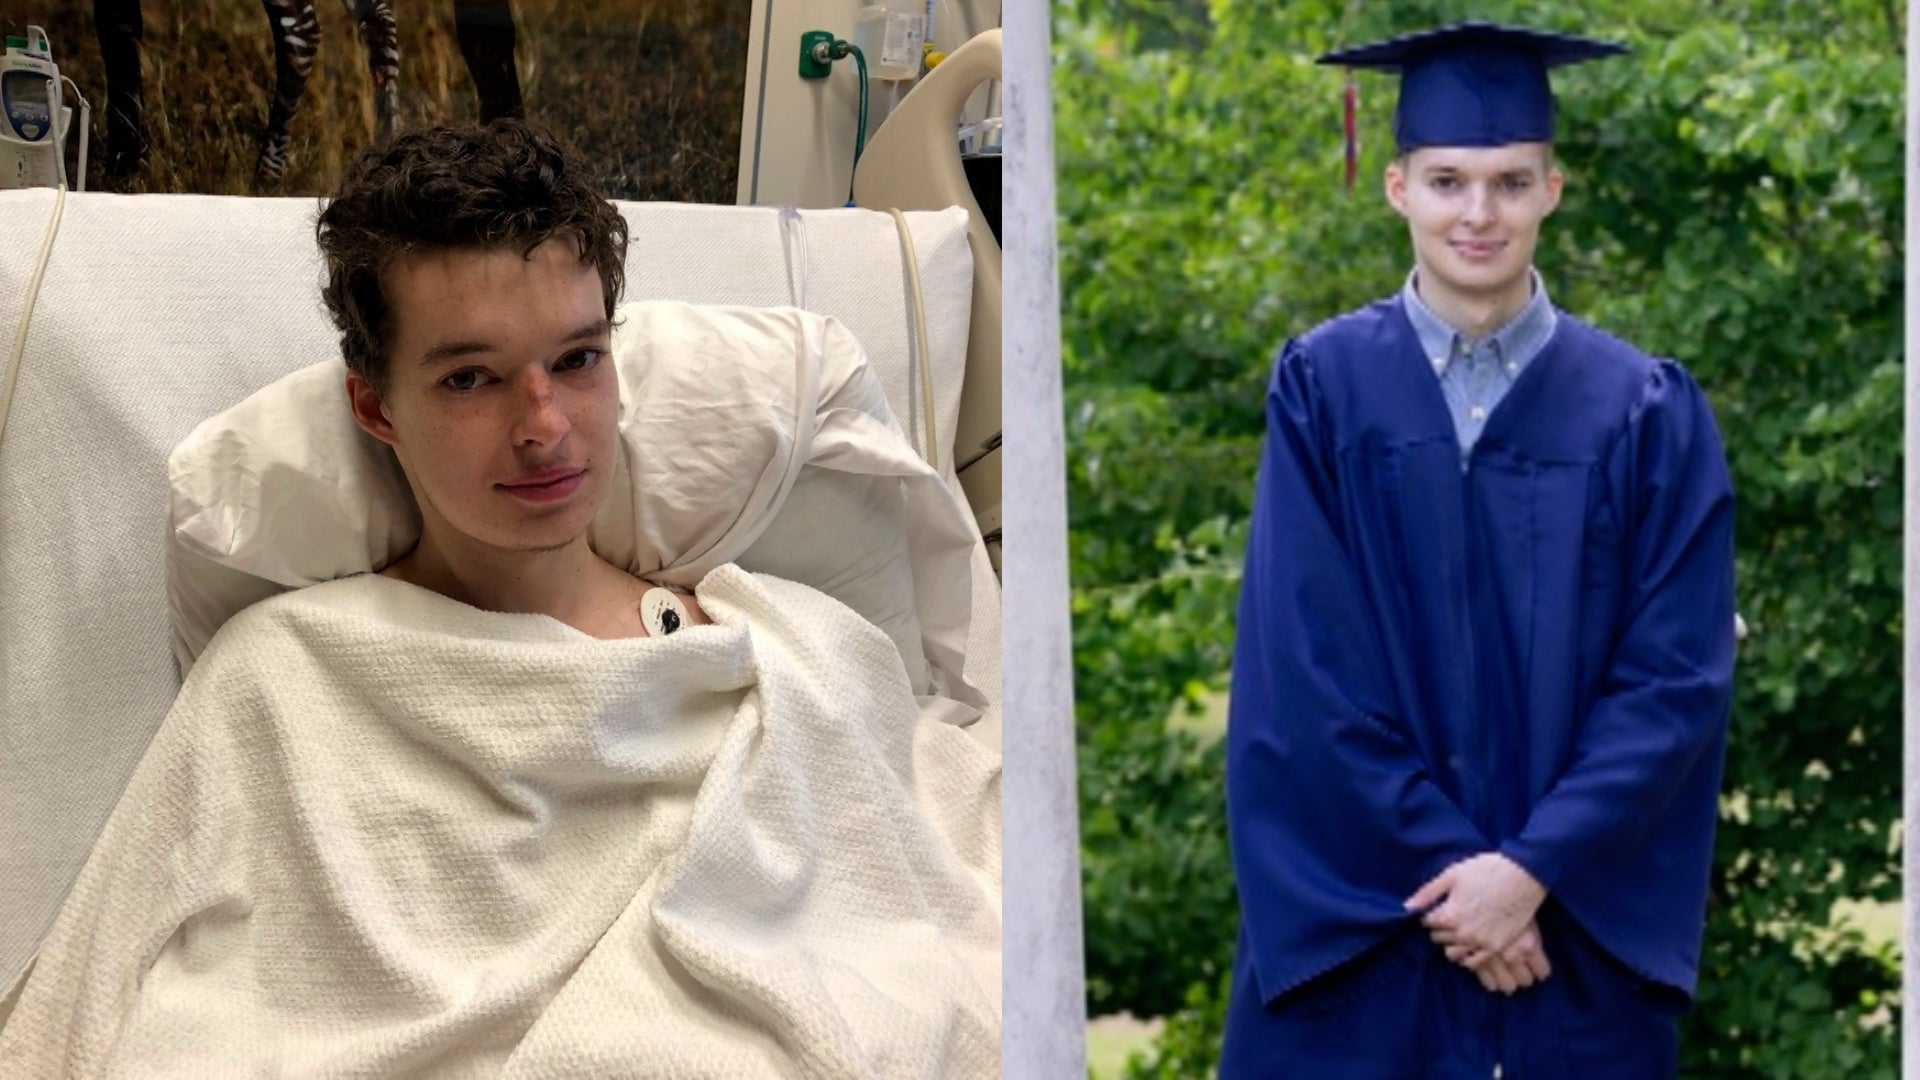 Teen Graduates High School While Fighting Cancer for 4th Time